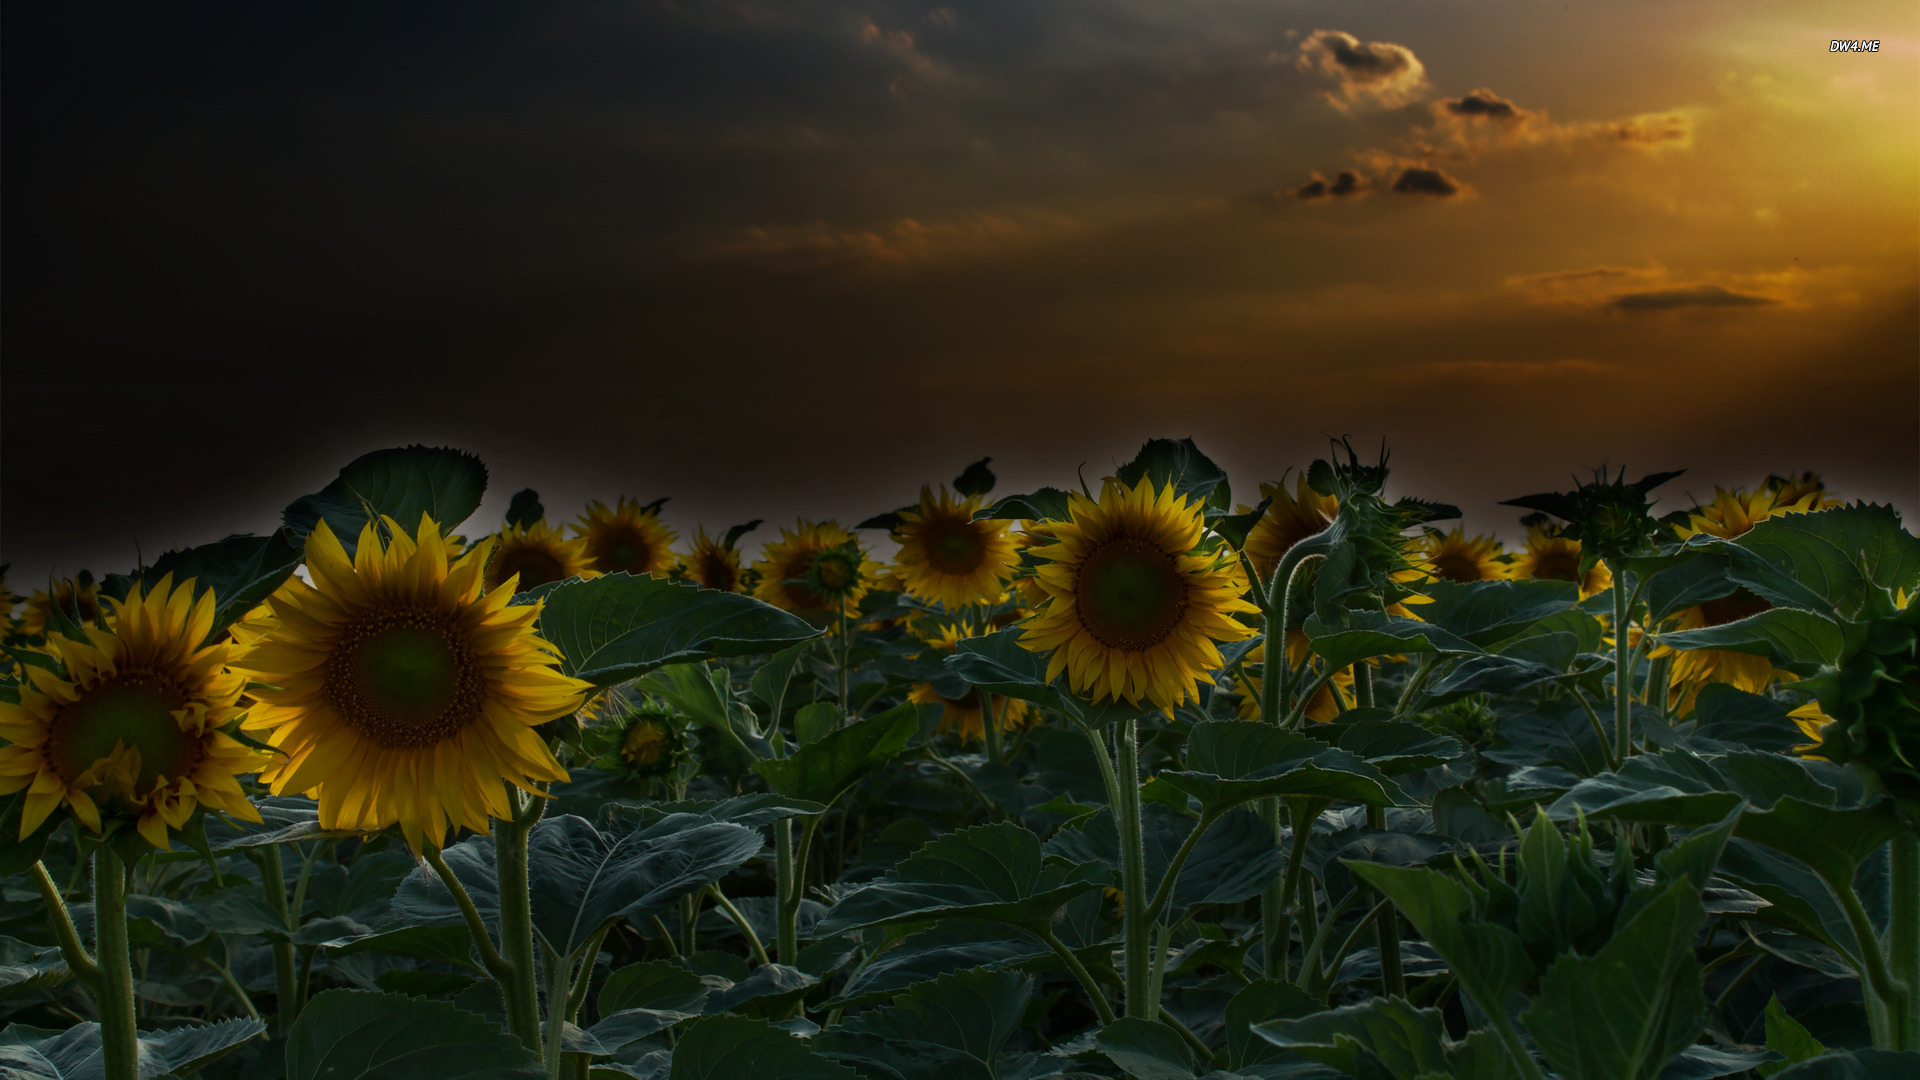 Sunflower field wallpaper   Flower wallpapers   662 1920x1080